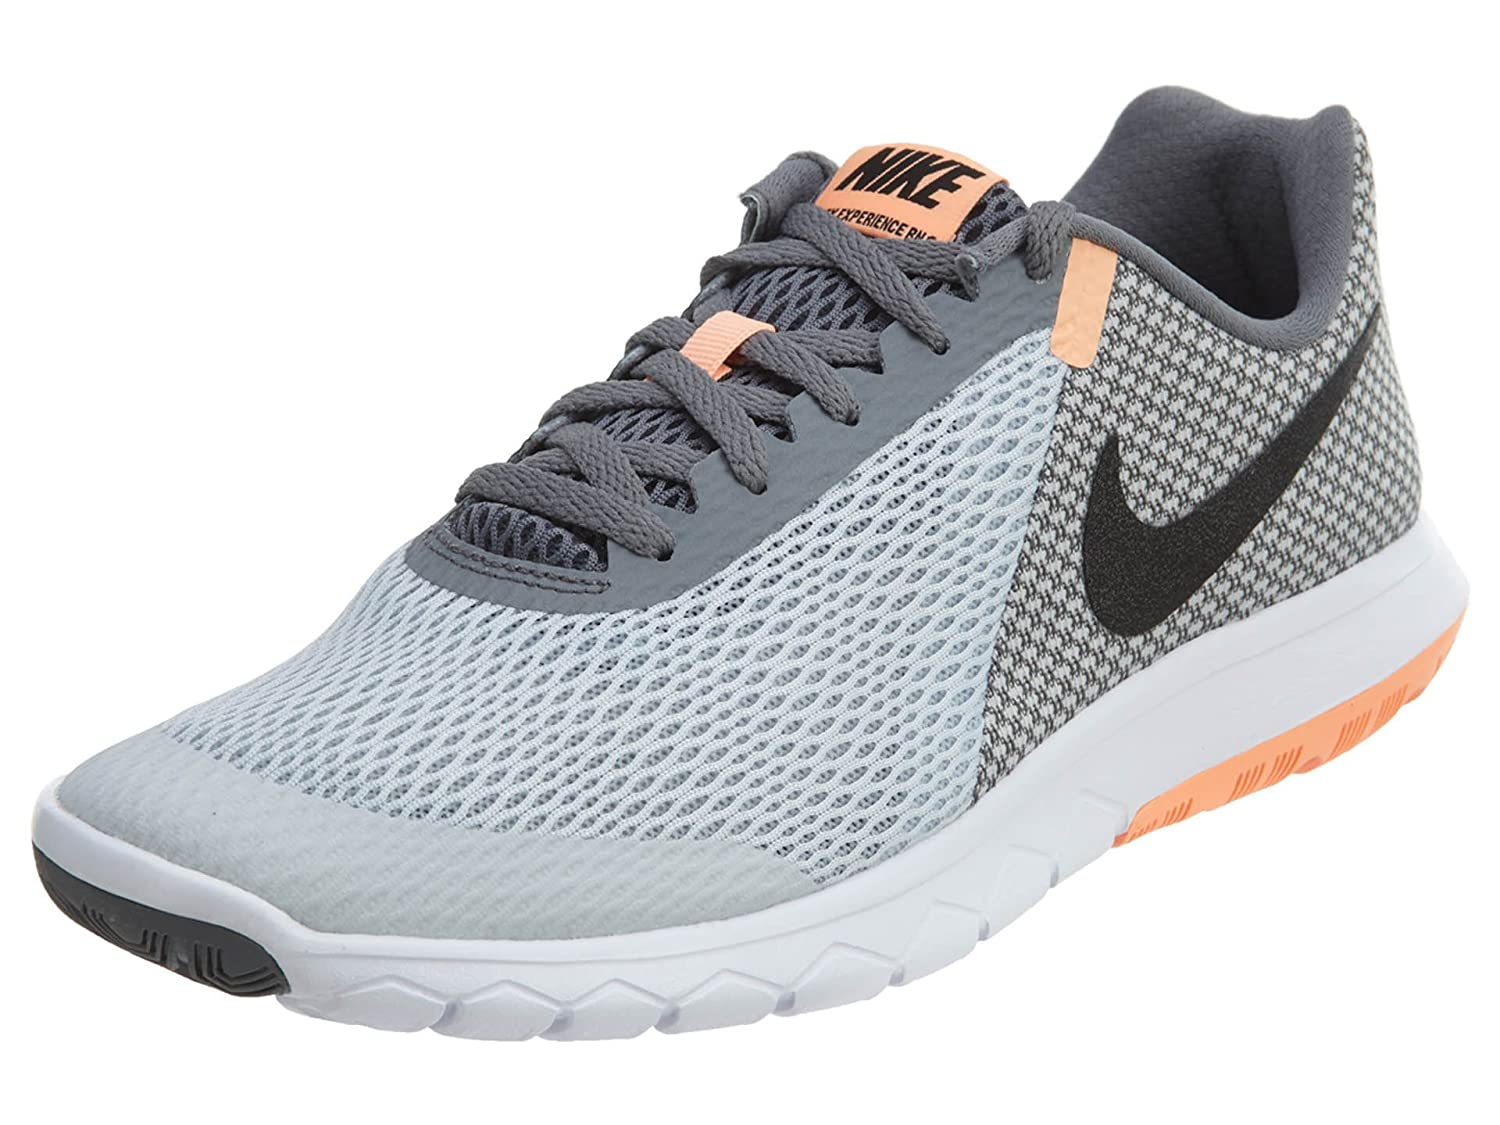 NIKE Women's Flex Experience RN 6 Running Shoe B01K2K2YFG 11 B(M) US|Platinum/White/Cool Grey